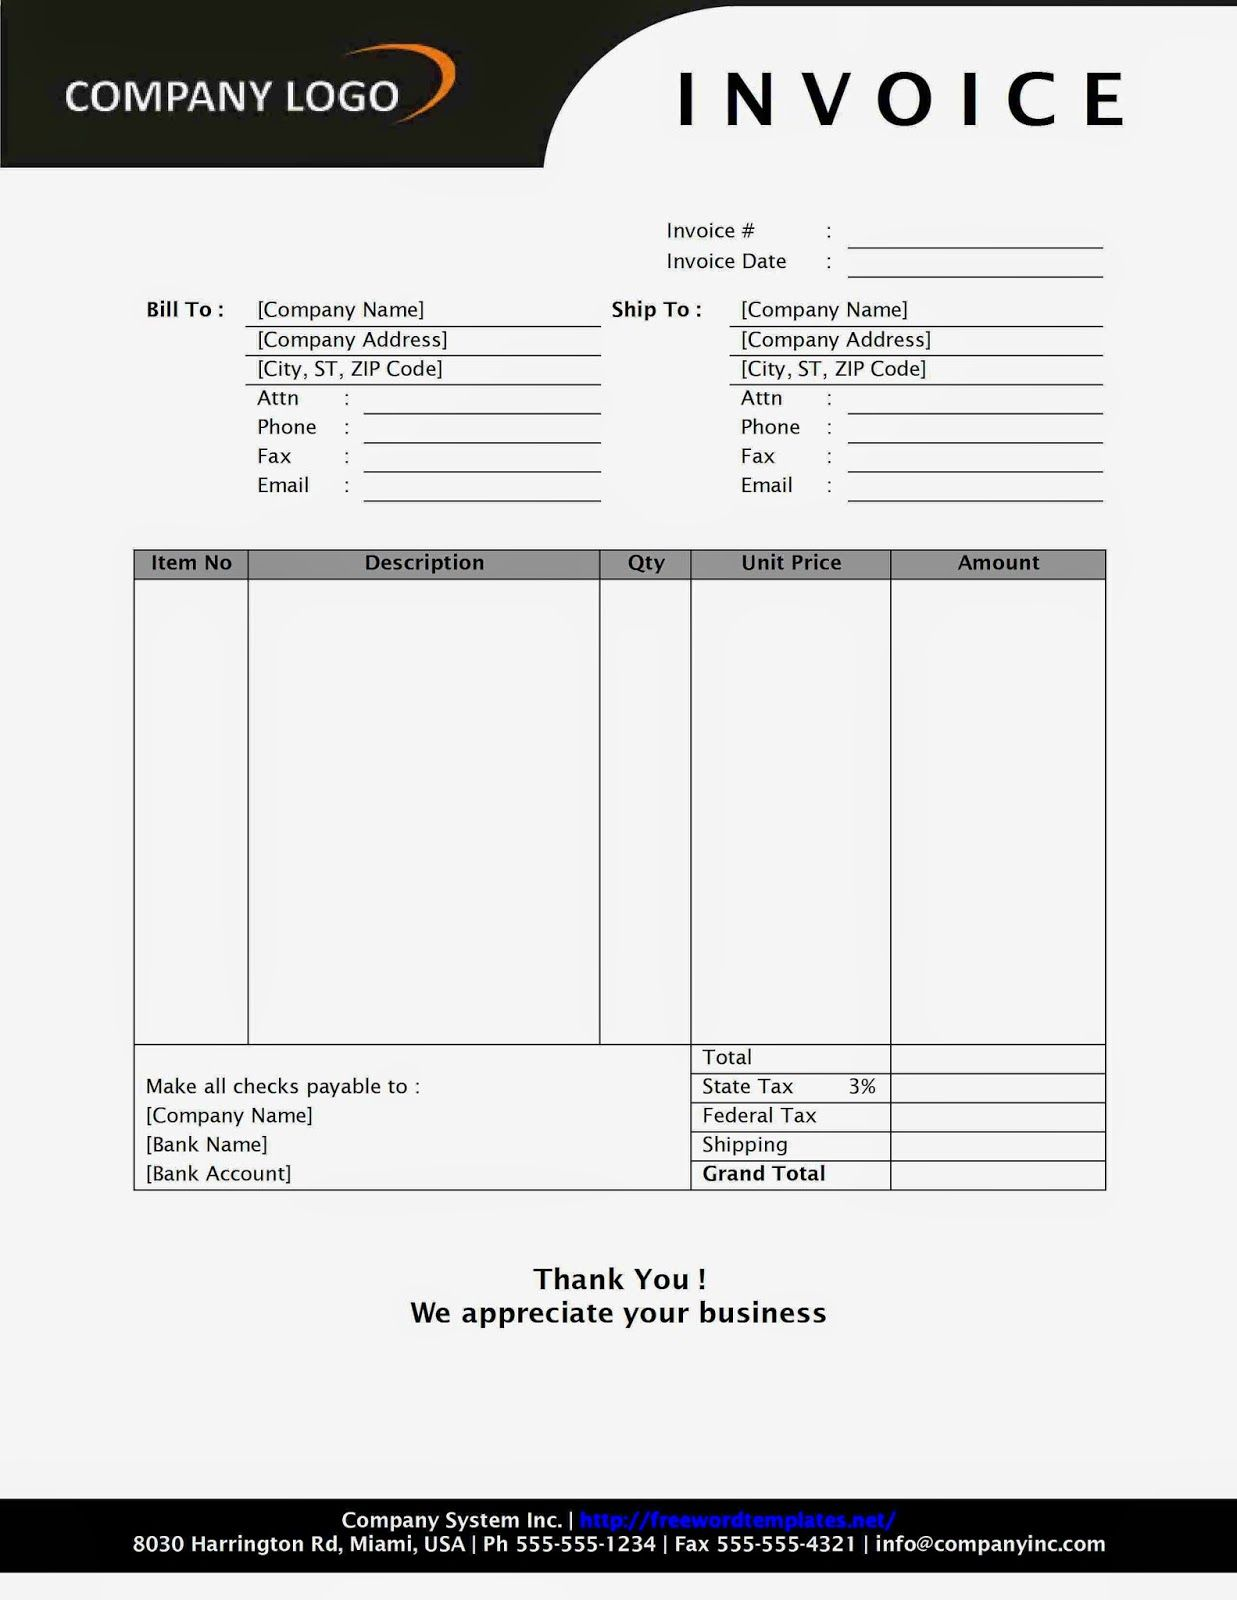 Sales Receipt Book Imprinted With Your Business Information Invoice Design Microsoft Word Invoice Template Invoice Template Word